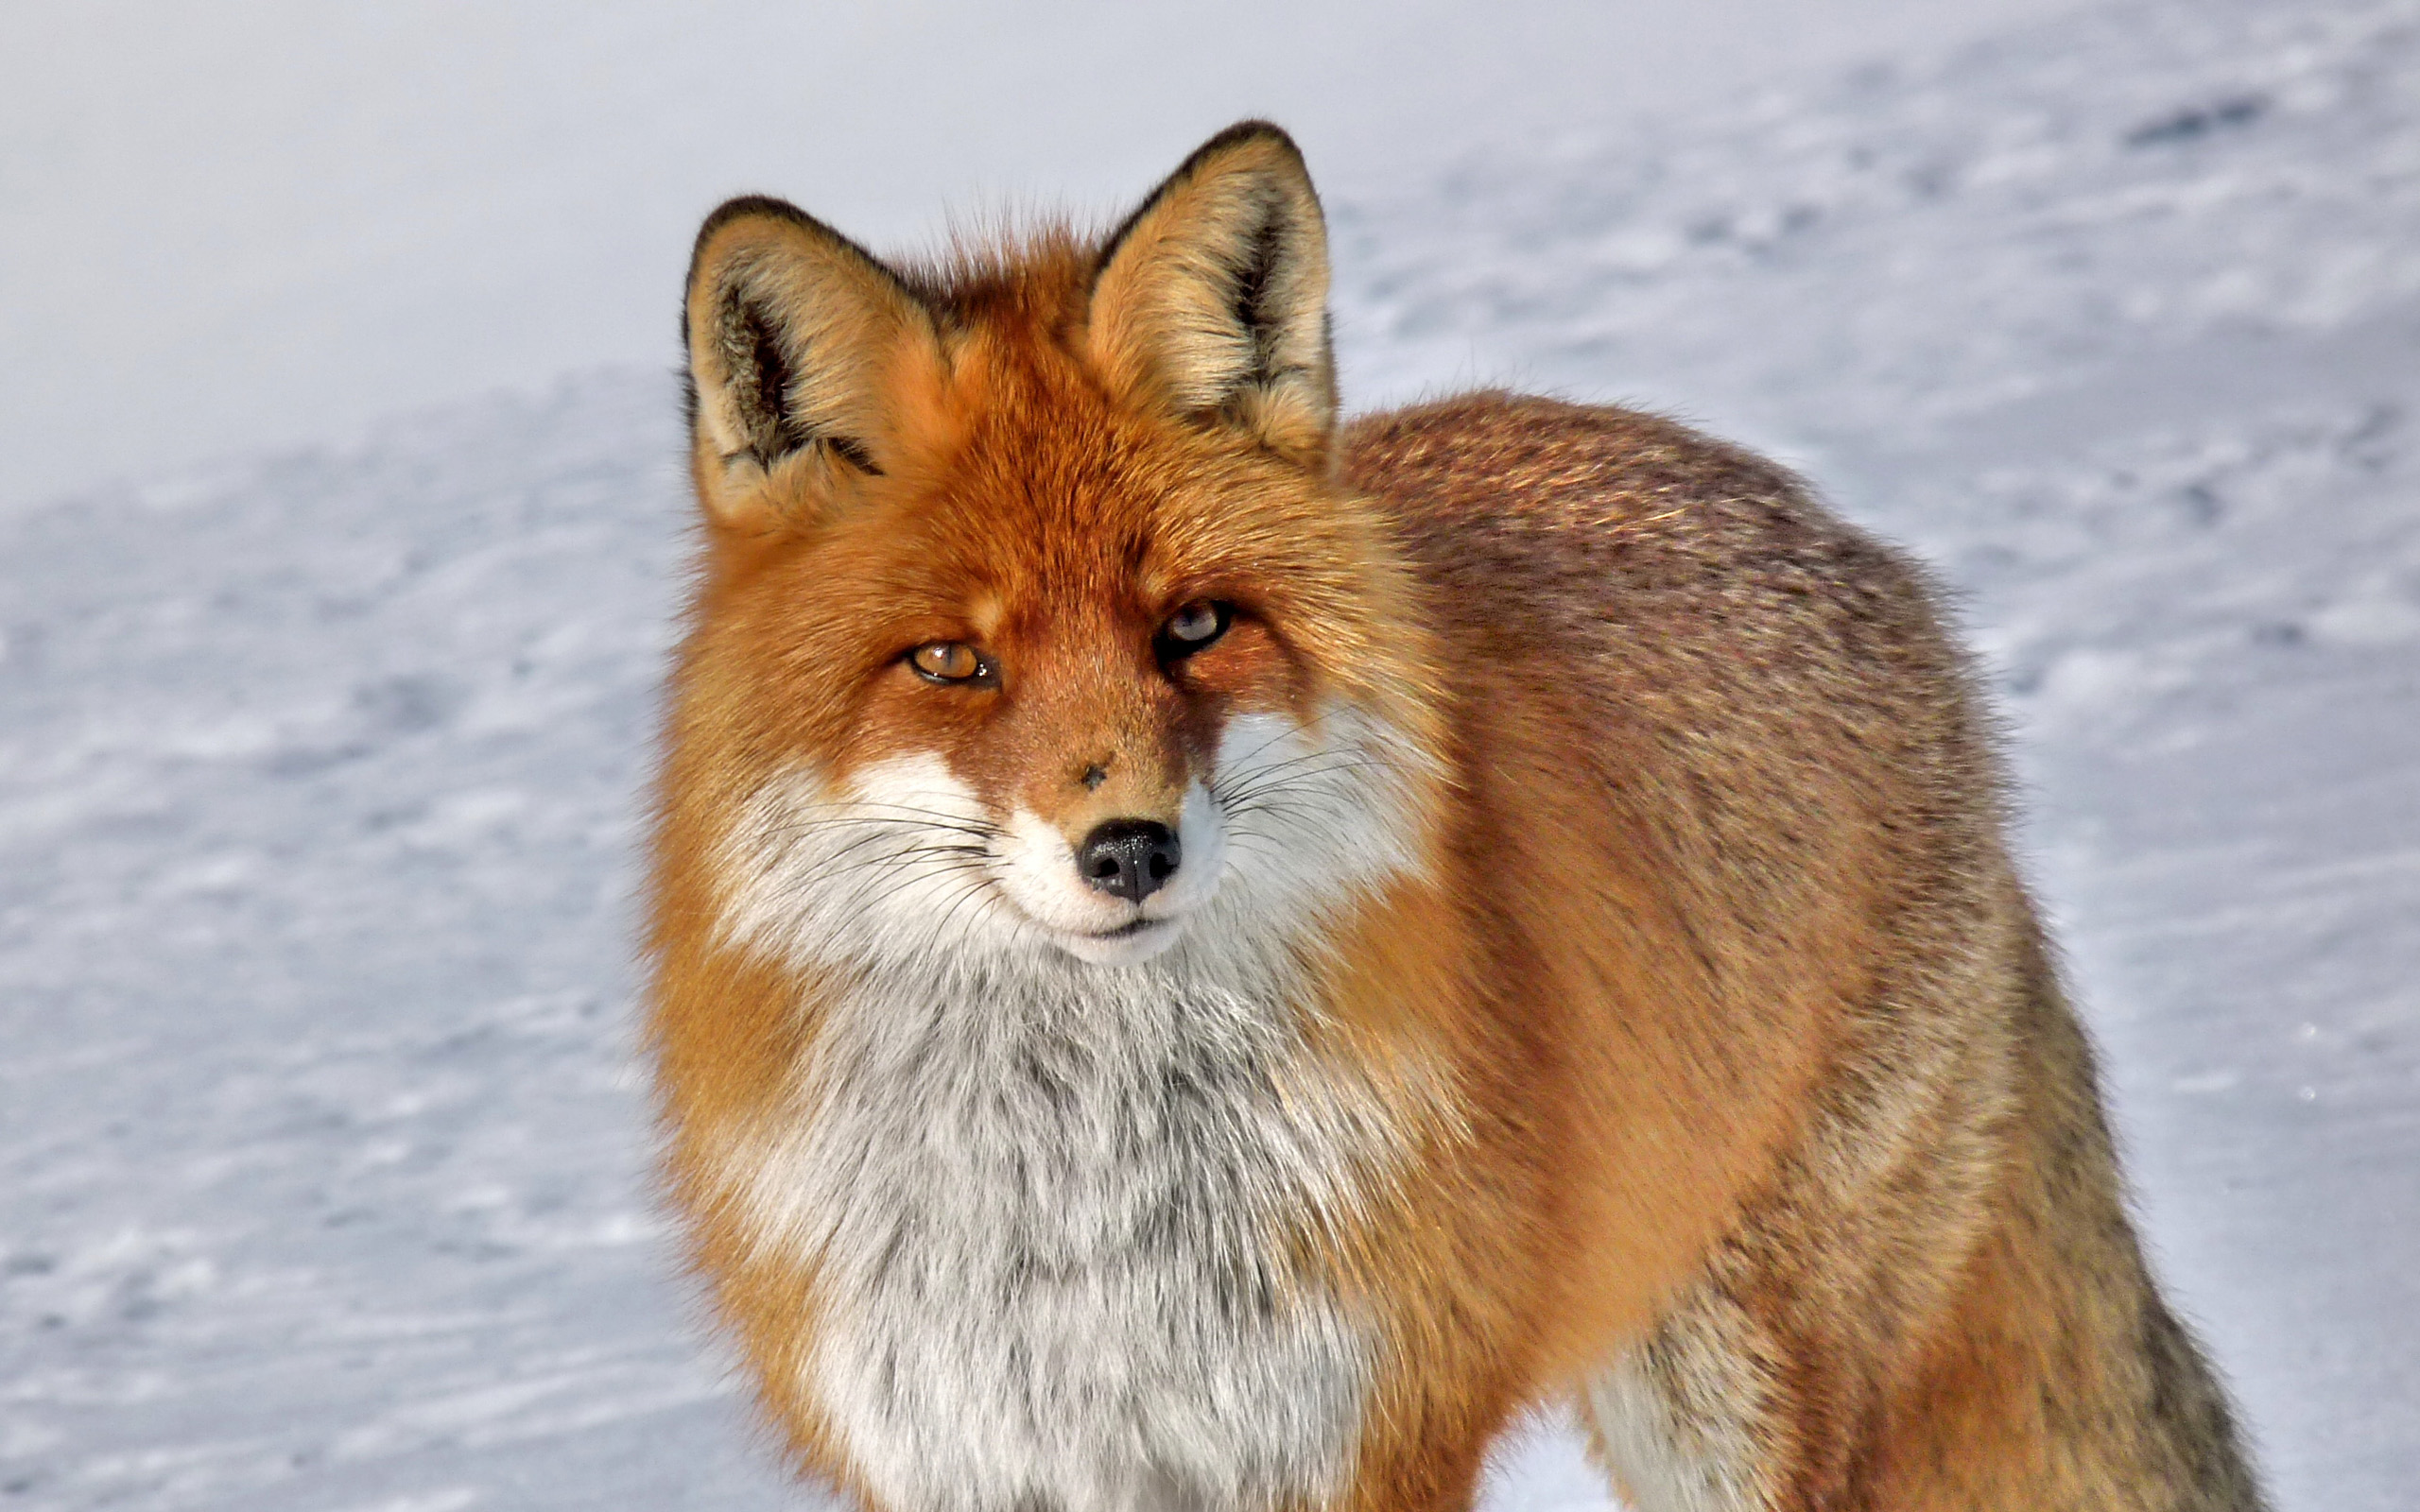 Animals Fox Orange Wallpaper Animal Wallpapers: Backgrounds - Wallpaper Abyss - Page 4